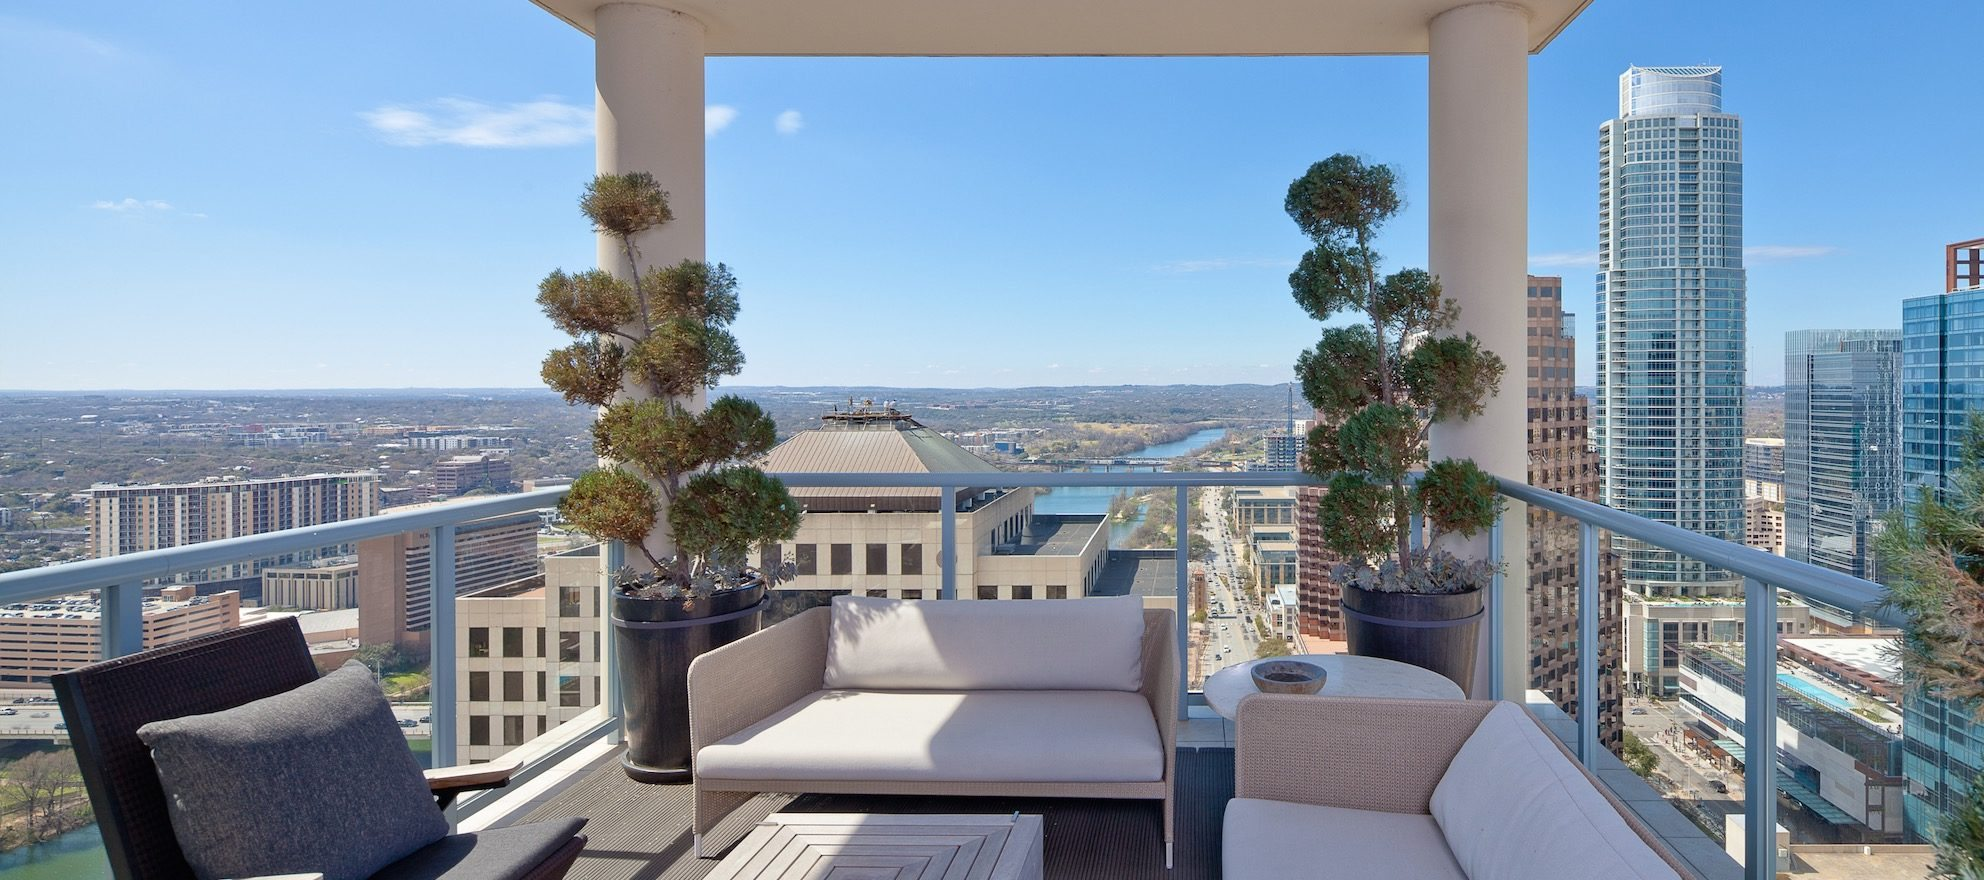 Luxury listing of the day: Four Seasons Residence penthouse in Austin, Texas